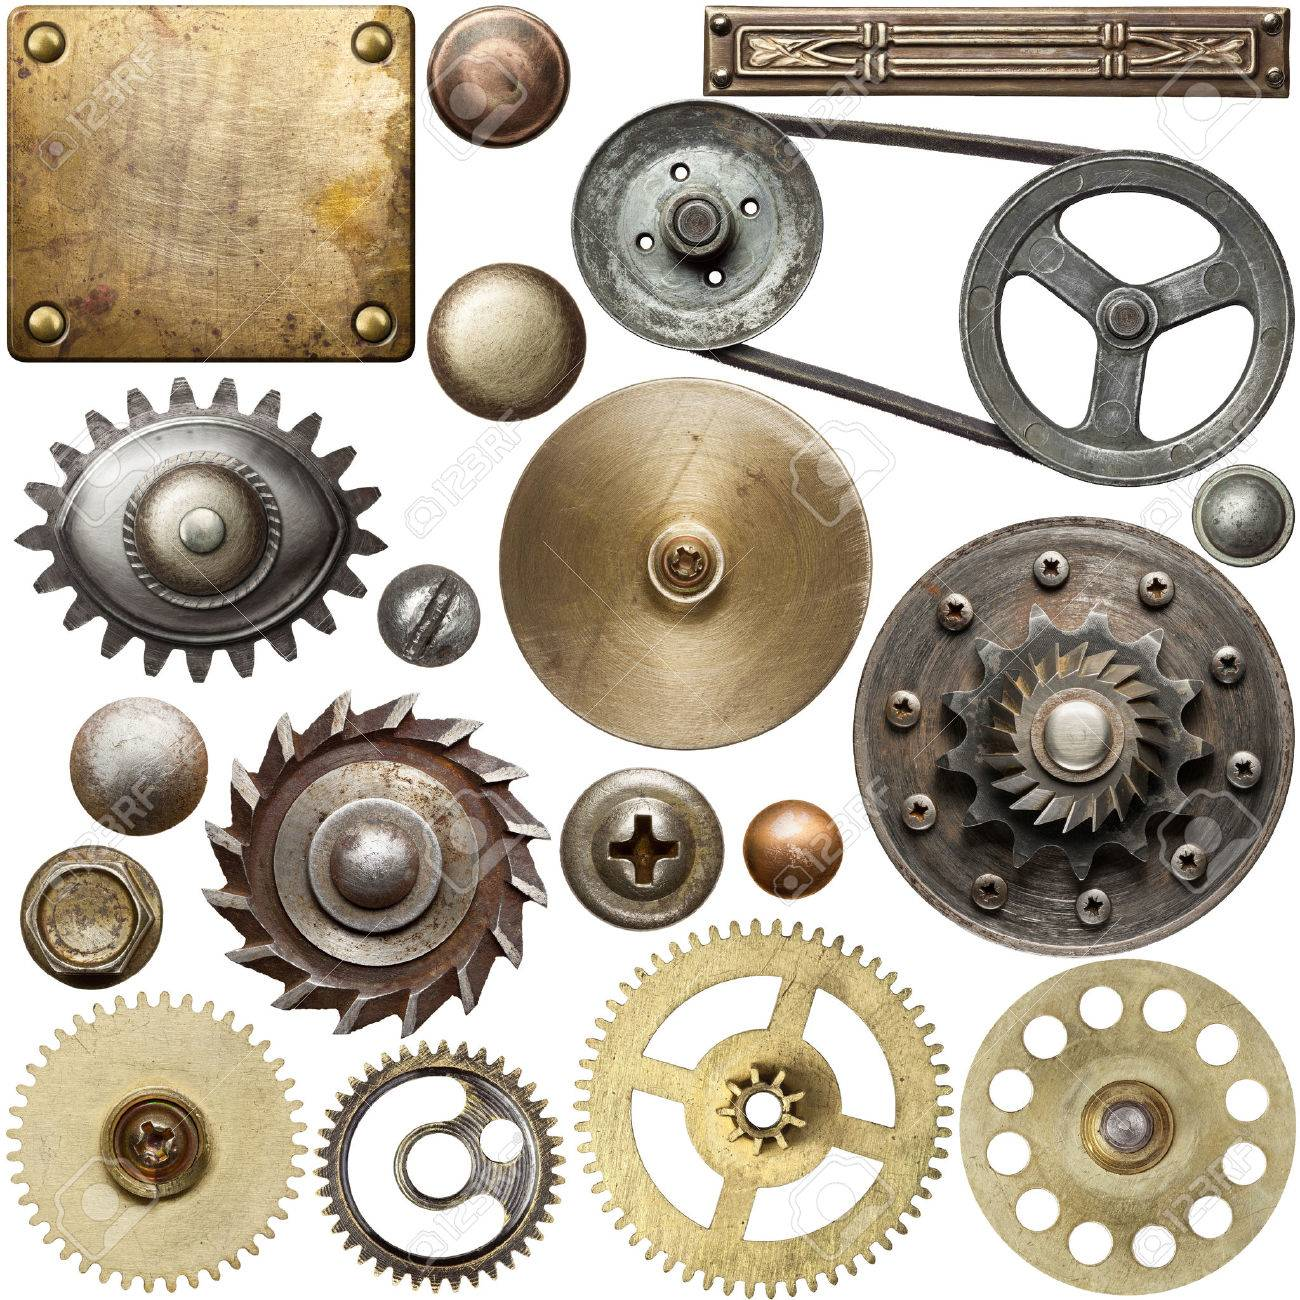 Screw heads, gears, textures and other metal details. Stock Photo - 32448805